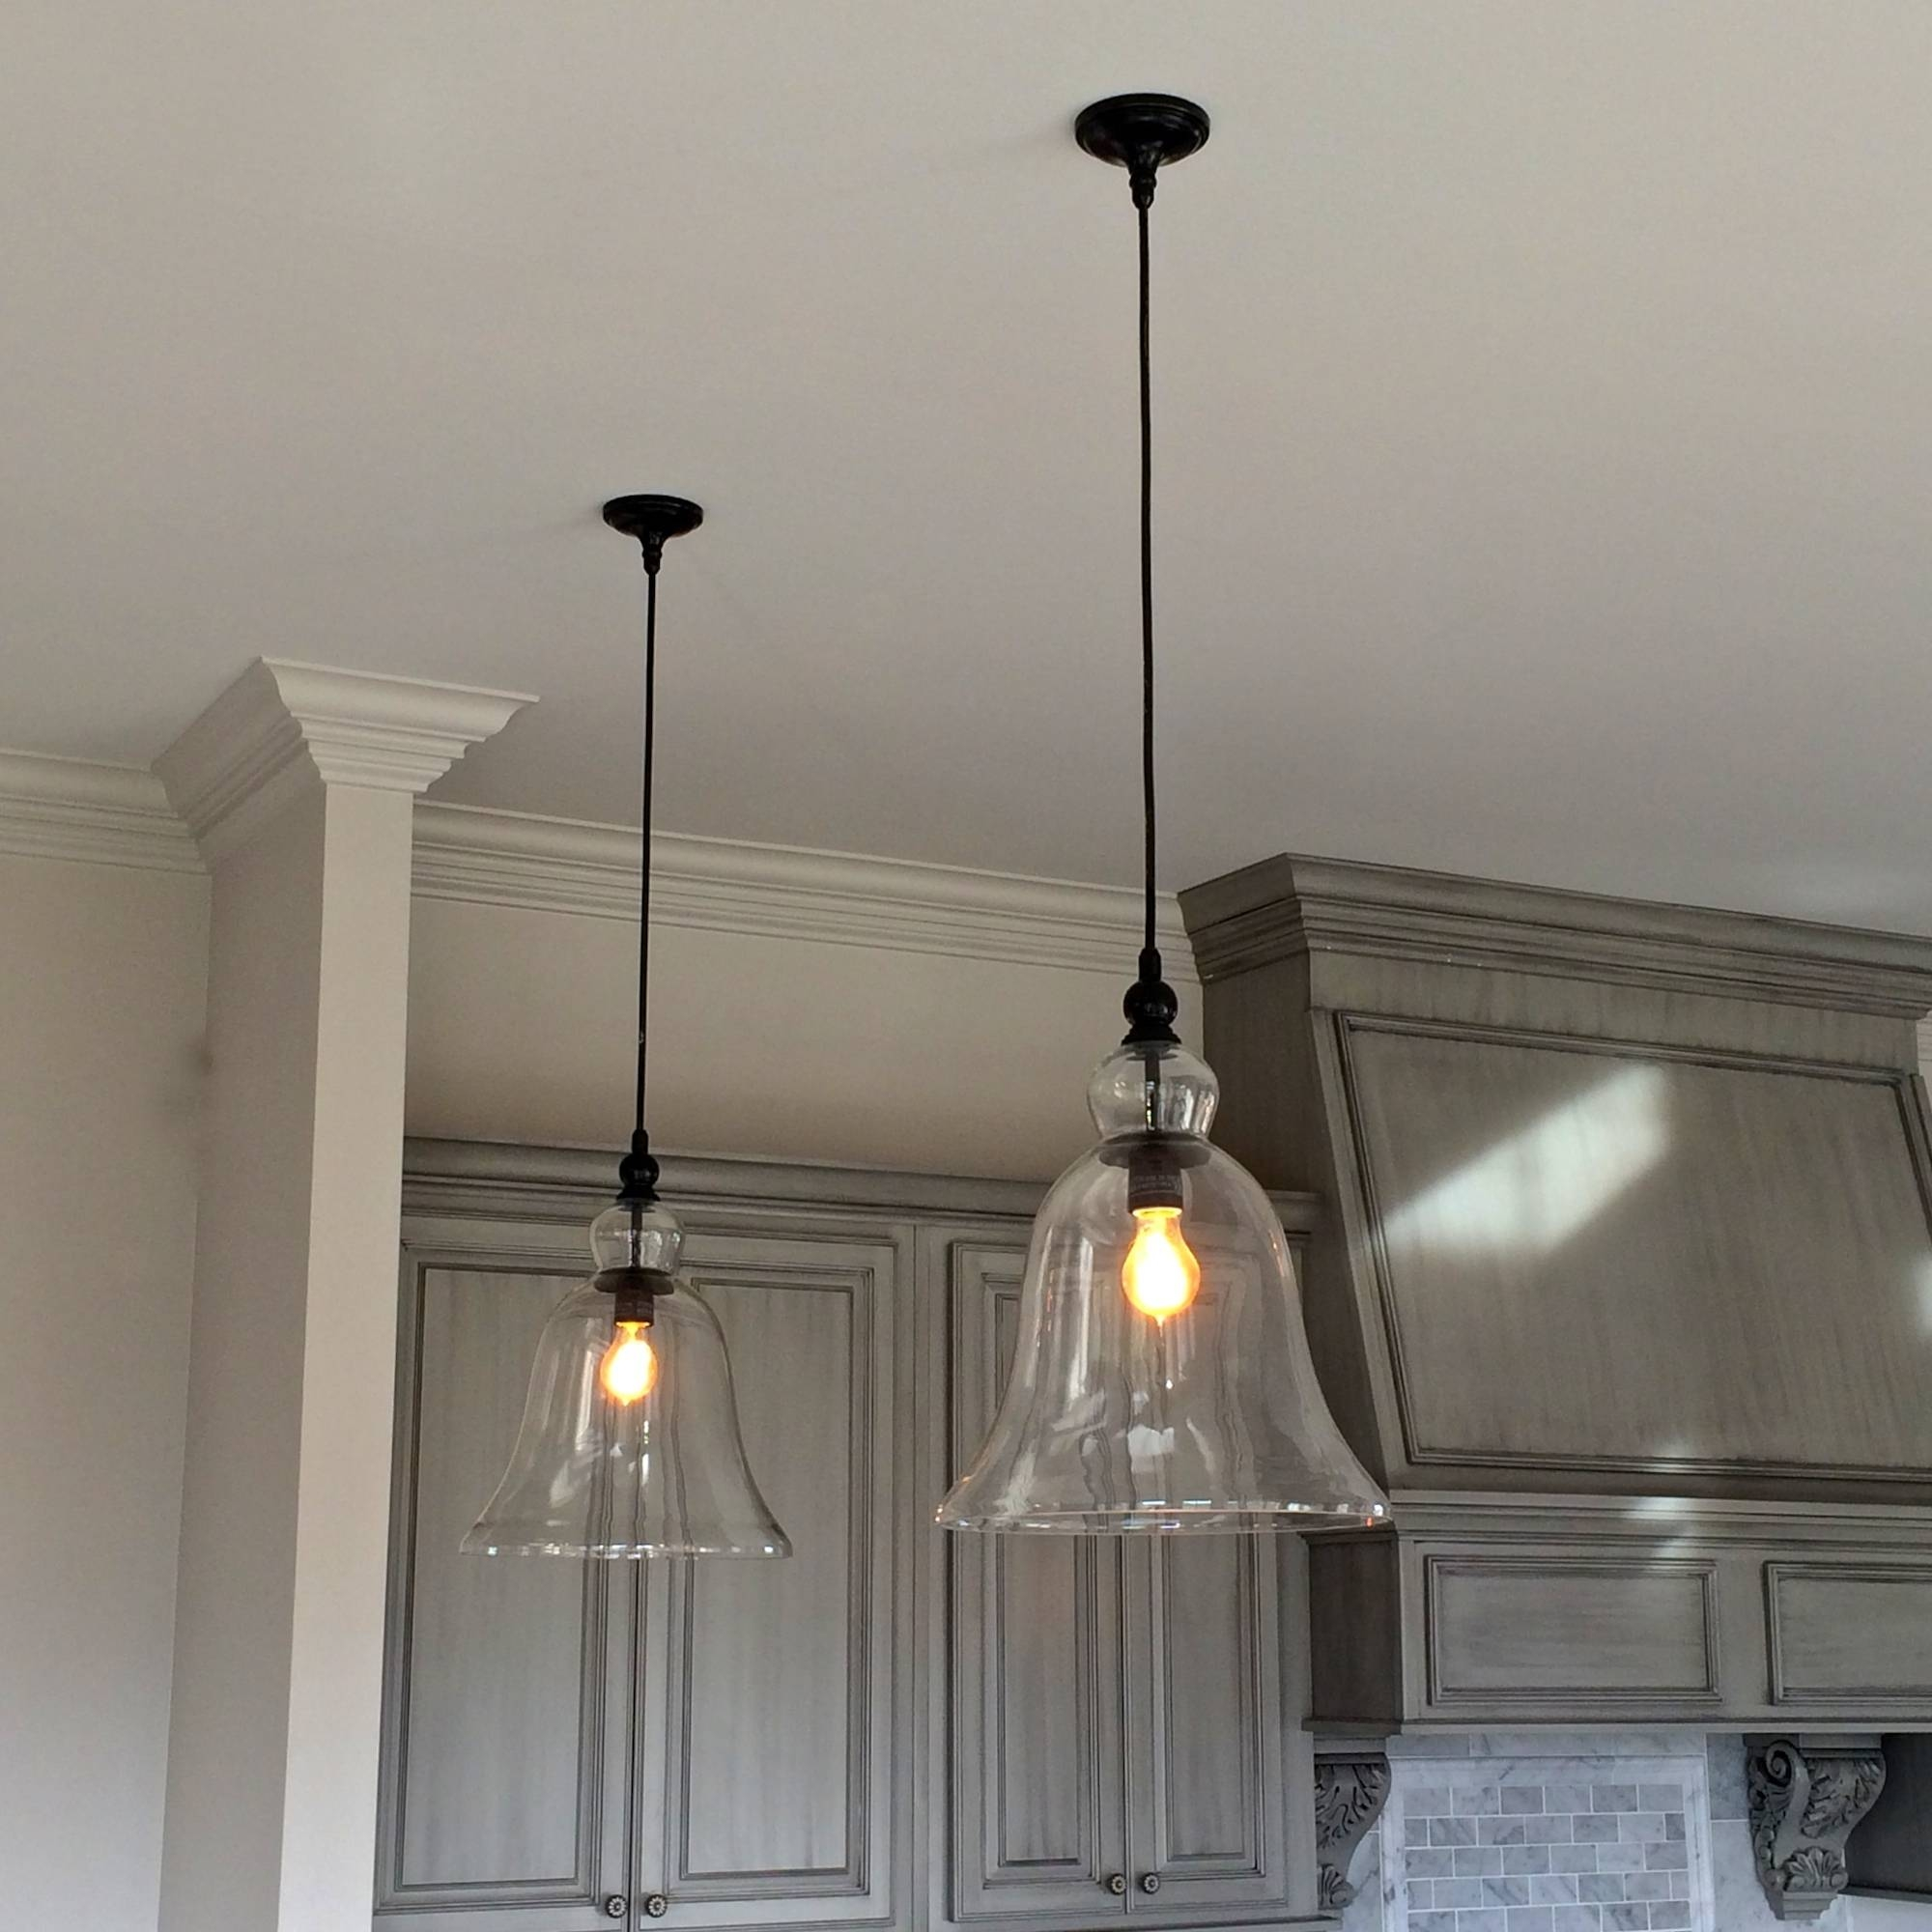 Best Vintage Glass Pendant Light 69 About Remodel Small Pendant throughout Small Glass Pendant Lights (Image 5 of 15)